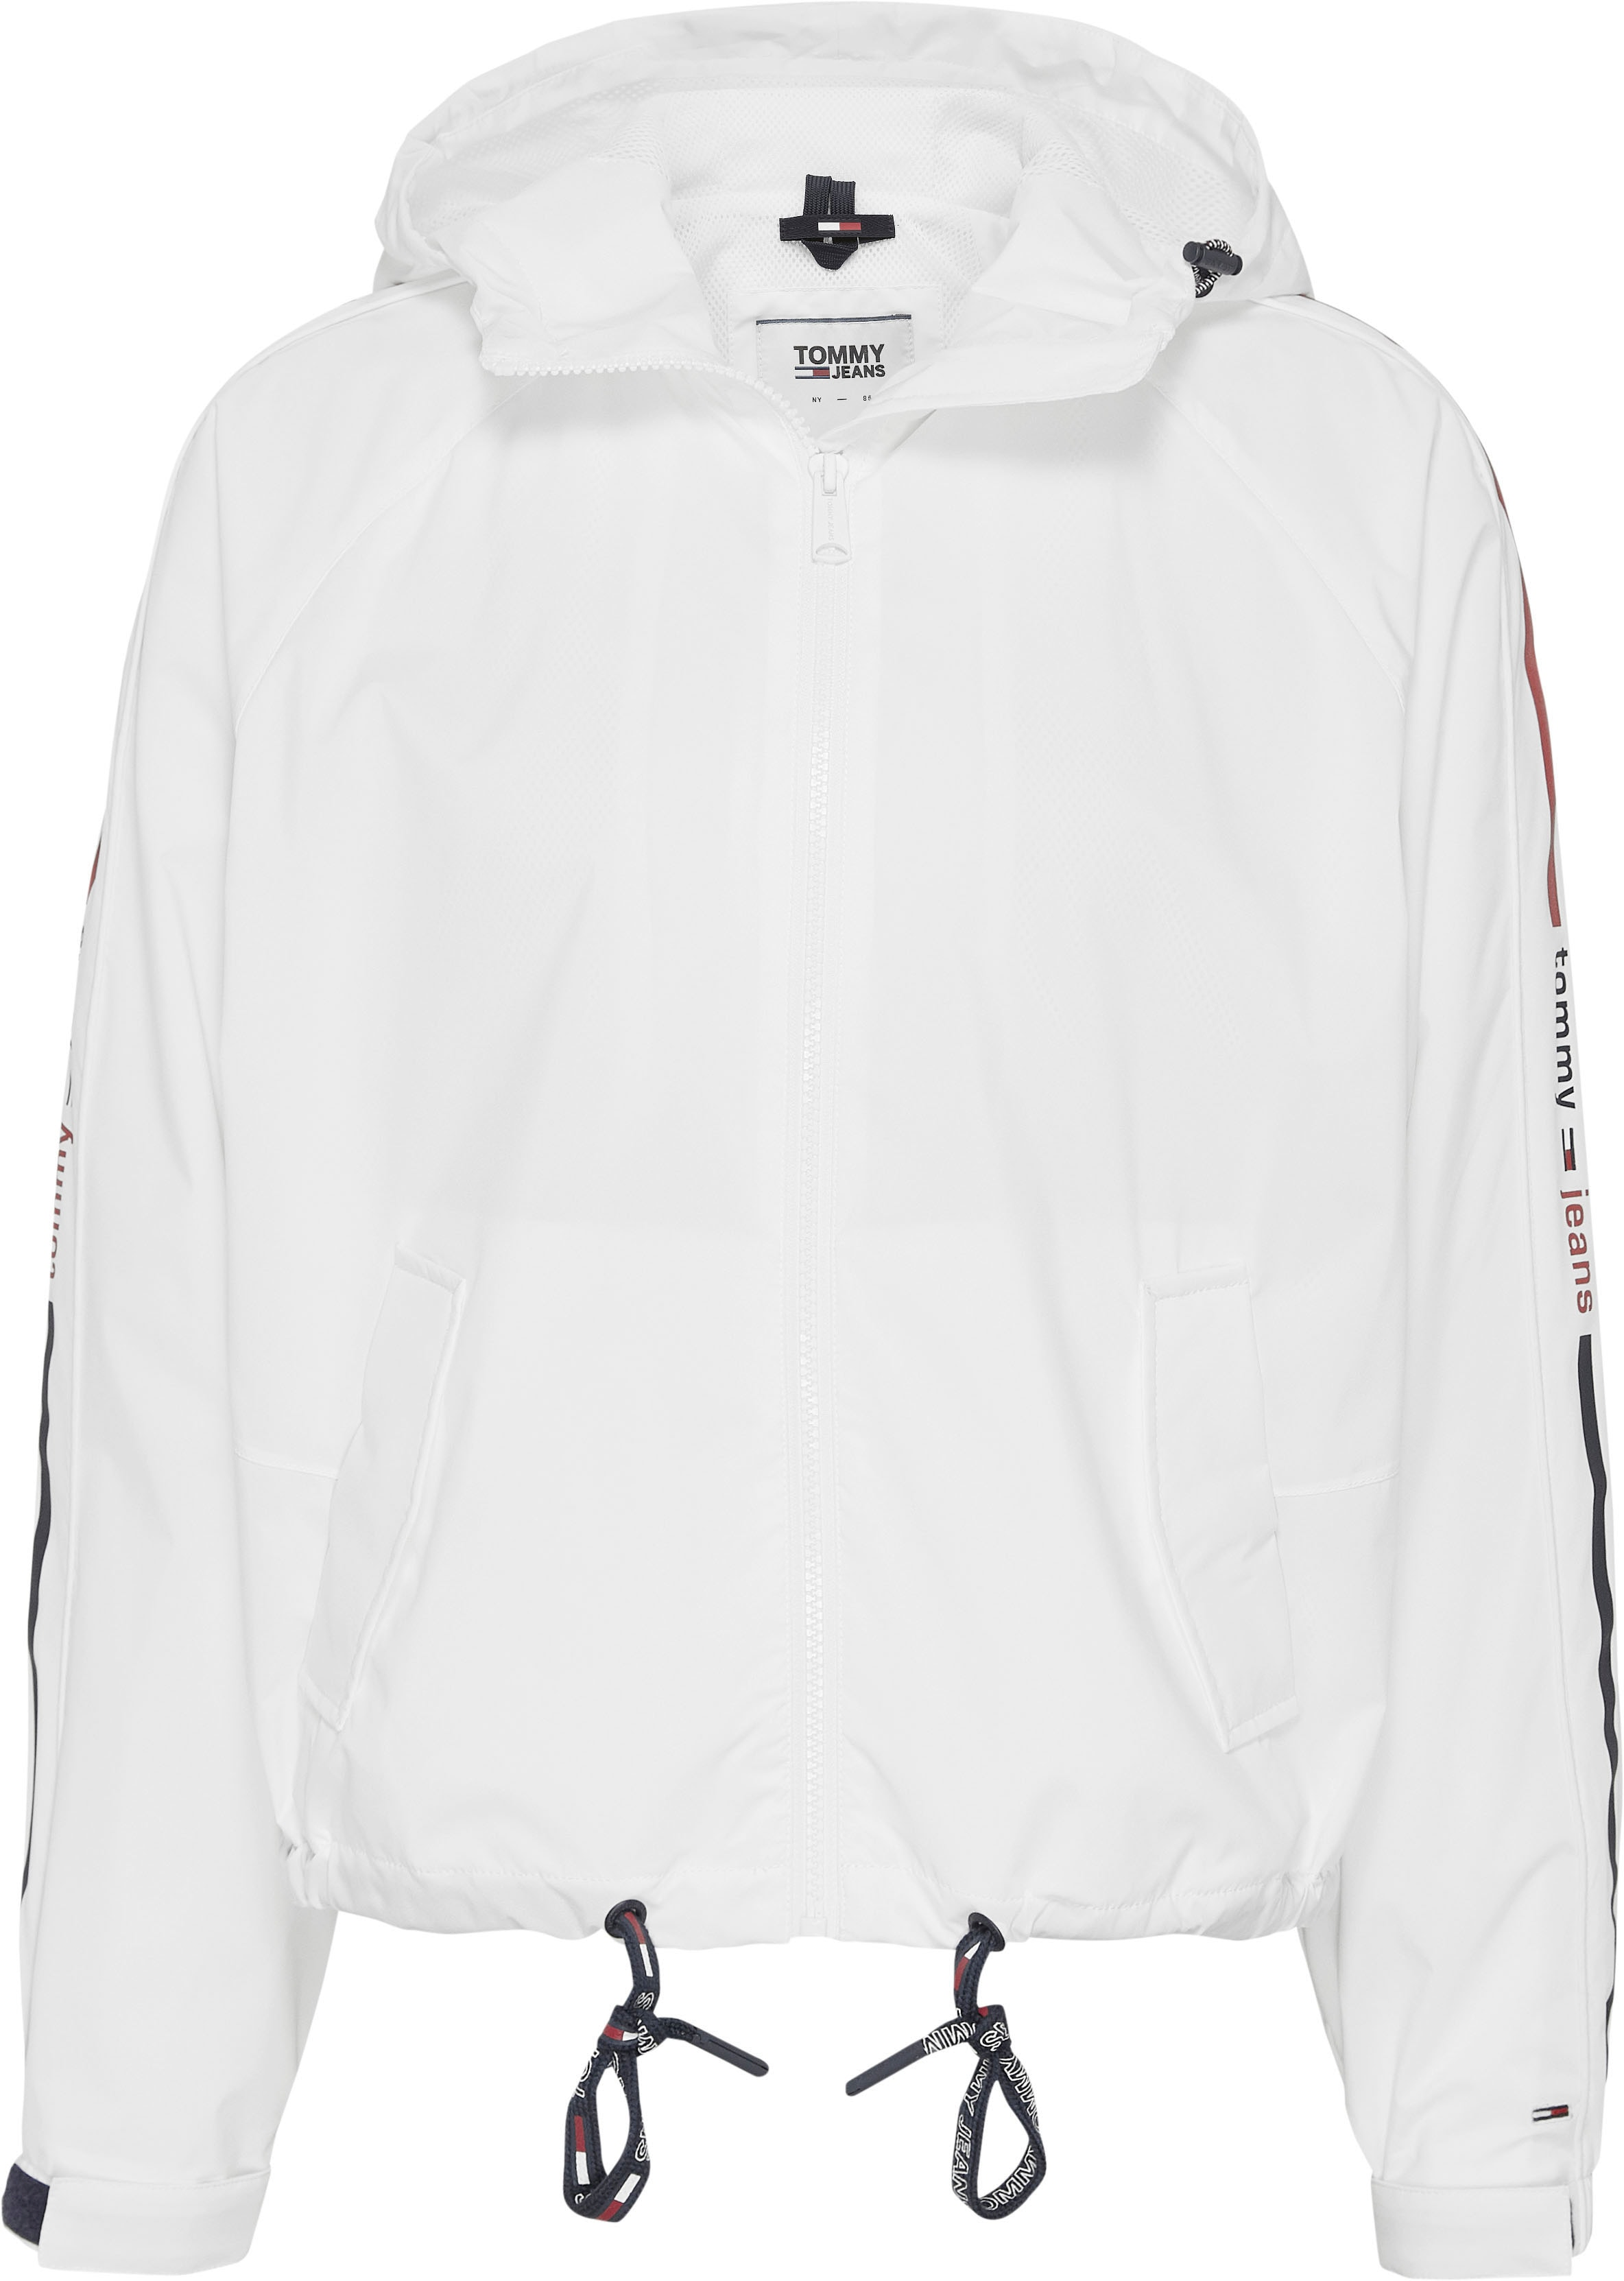 tommy jeans -  Windbreaker TJW BRANDED SLEEVES WINDBREAKER